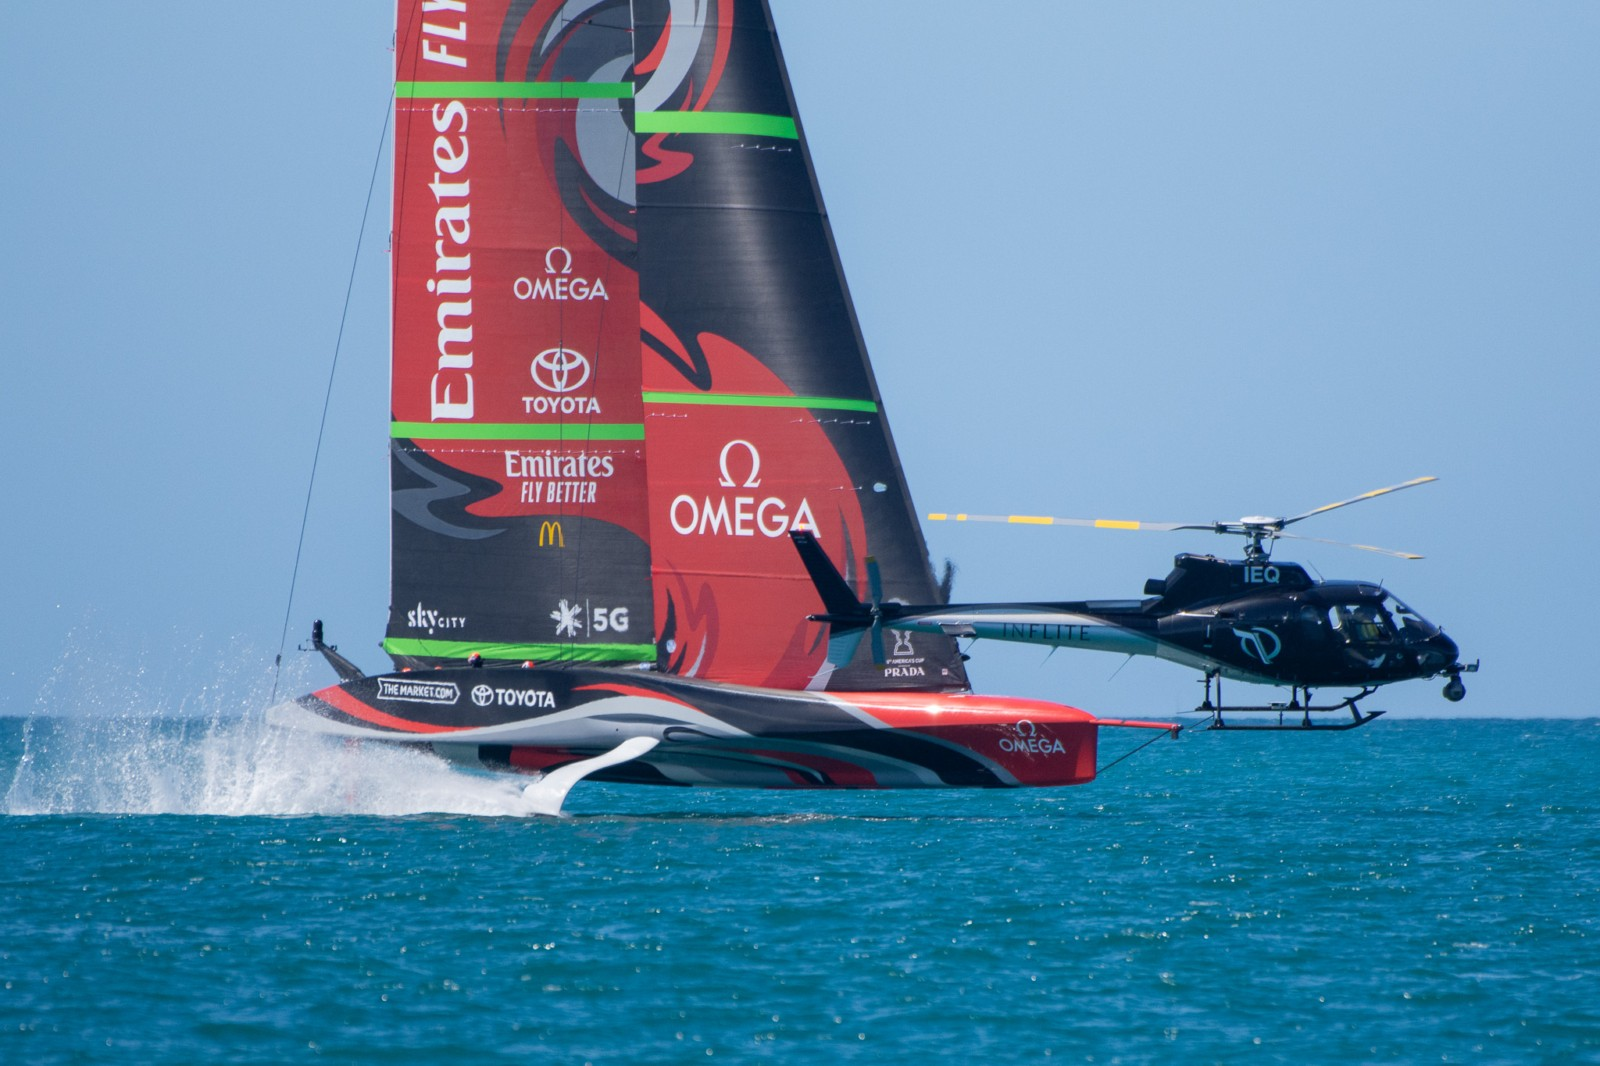 Filming of the 36th Americas cup